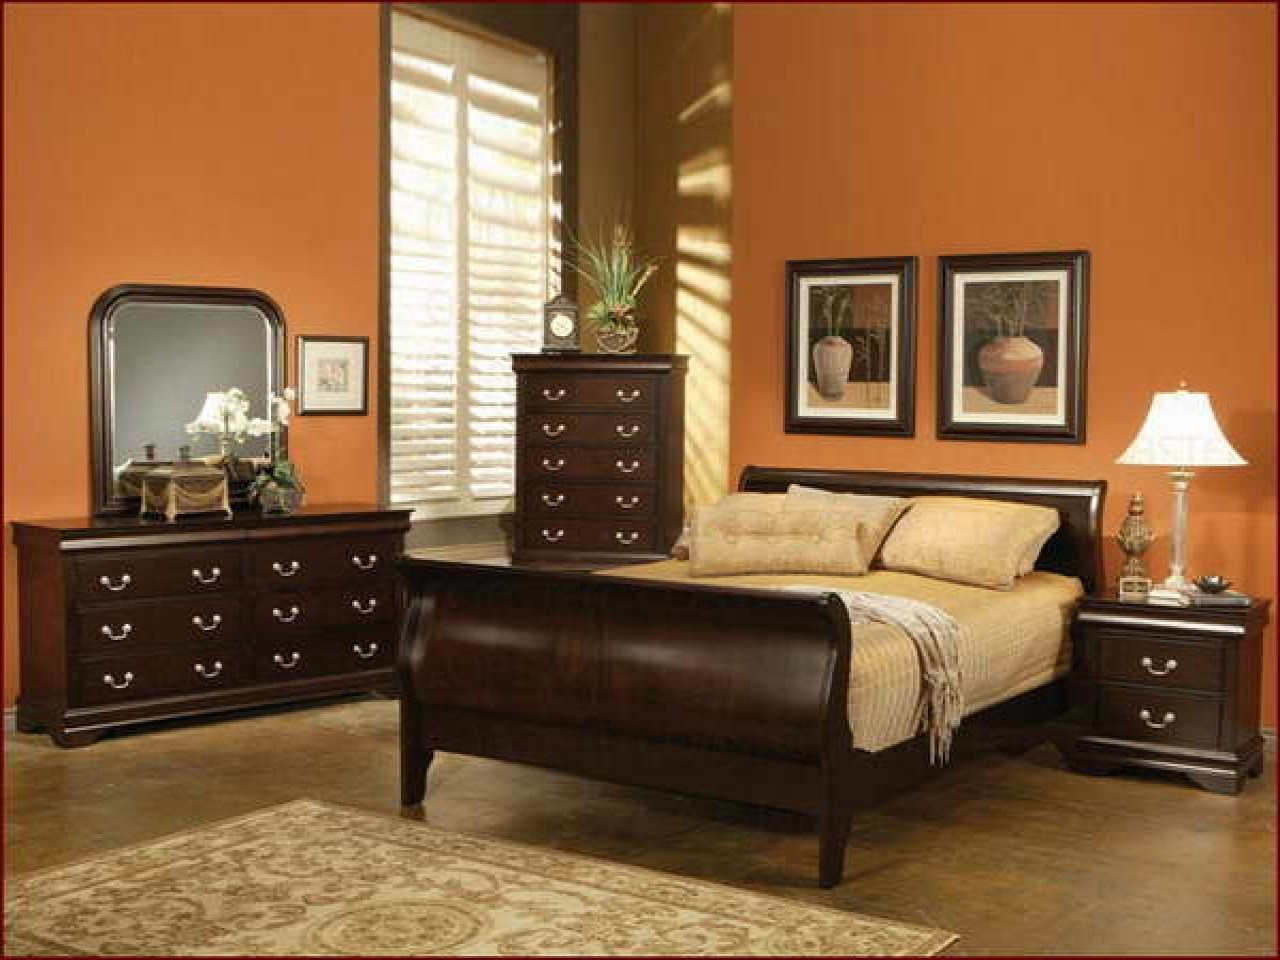 Best Beautiful Wall Colors For Bedrooms Best Paint Color Burnt Orange Orange Paint Colors For With Pictures